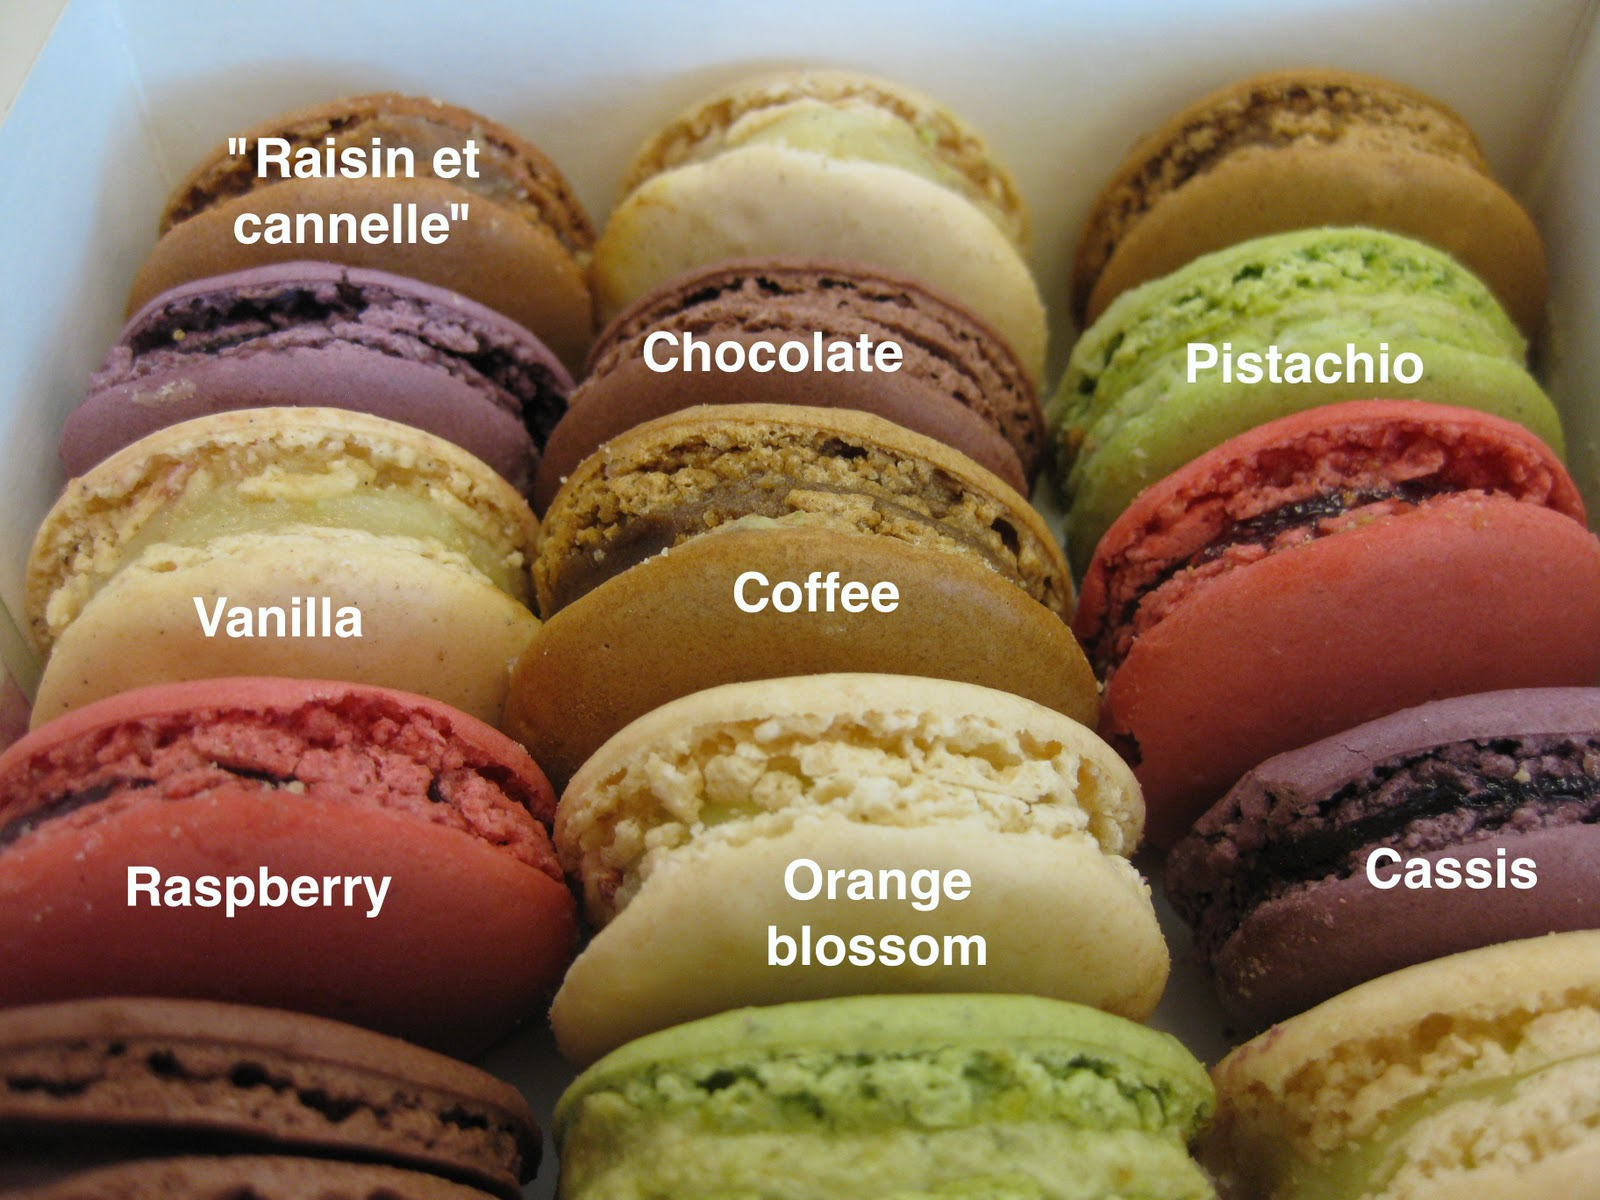 Les macarons Ladurée - Good Taste is the Worst Vice